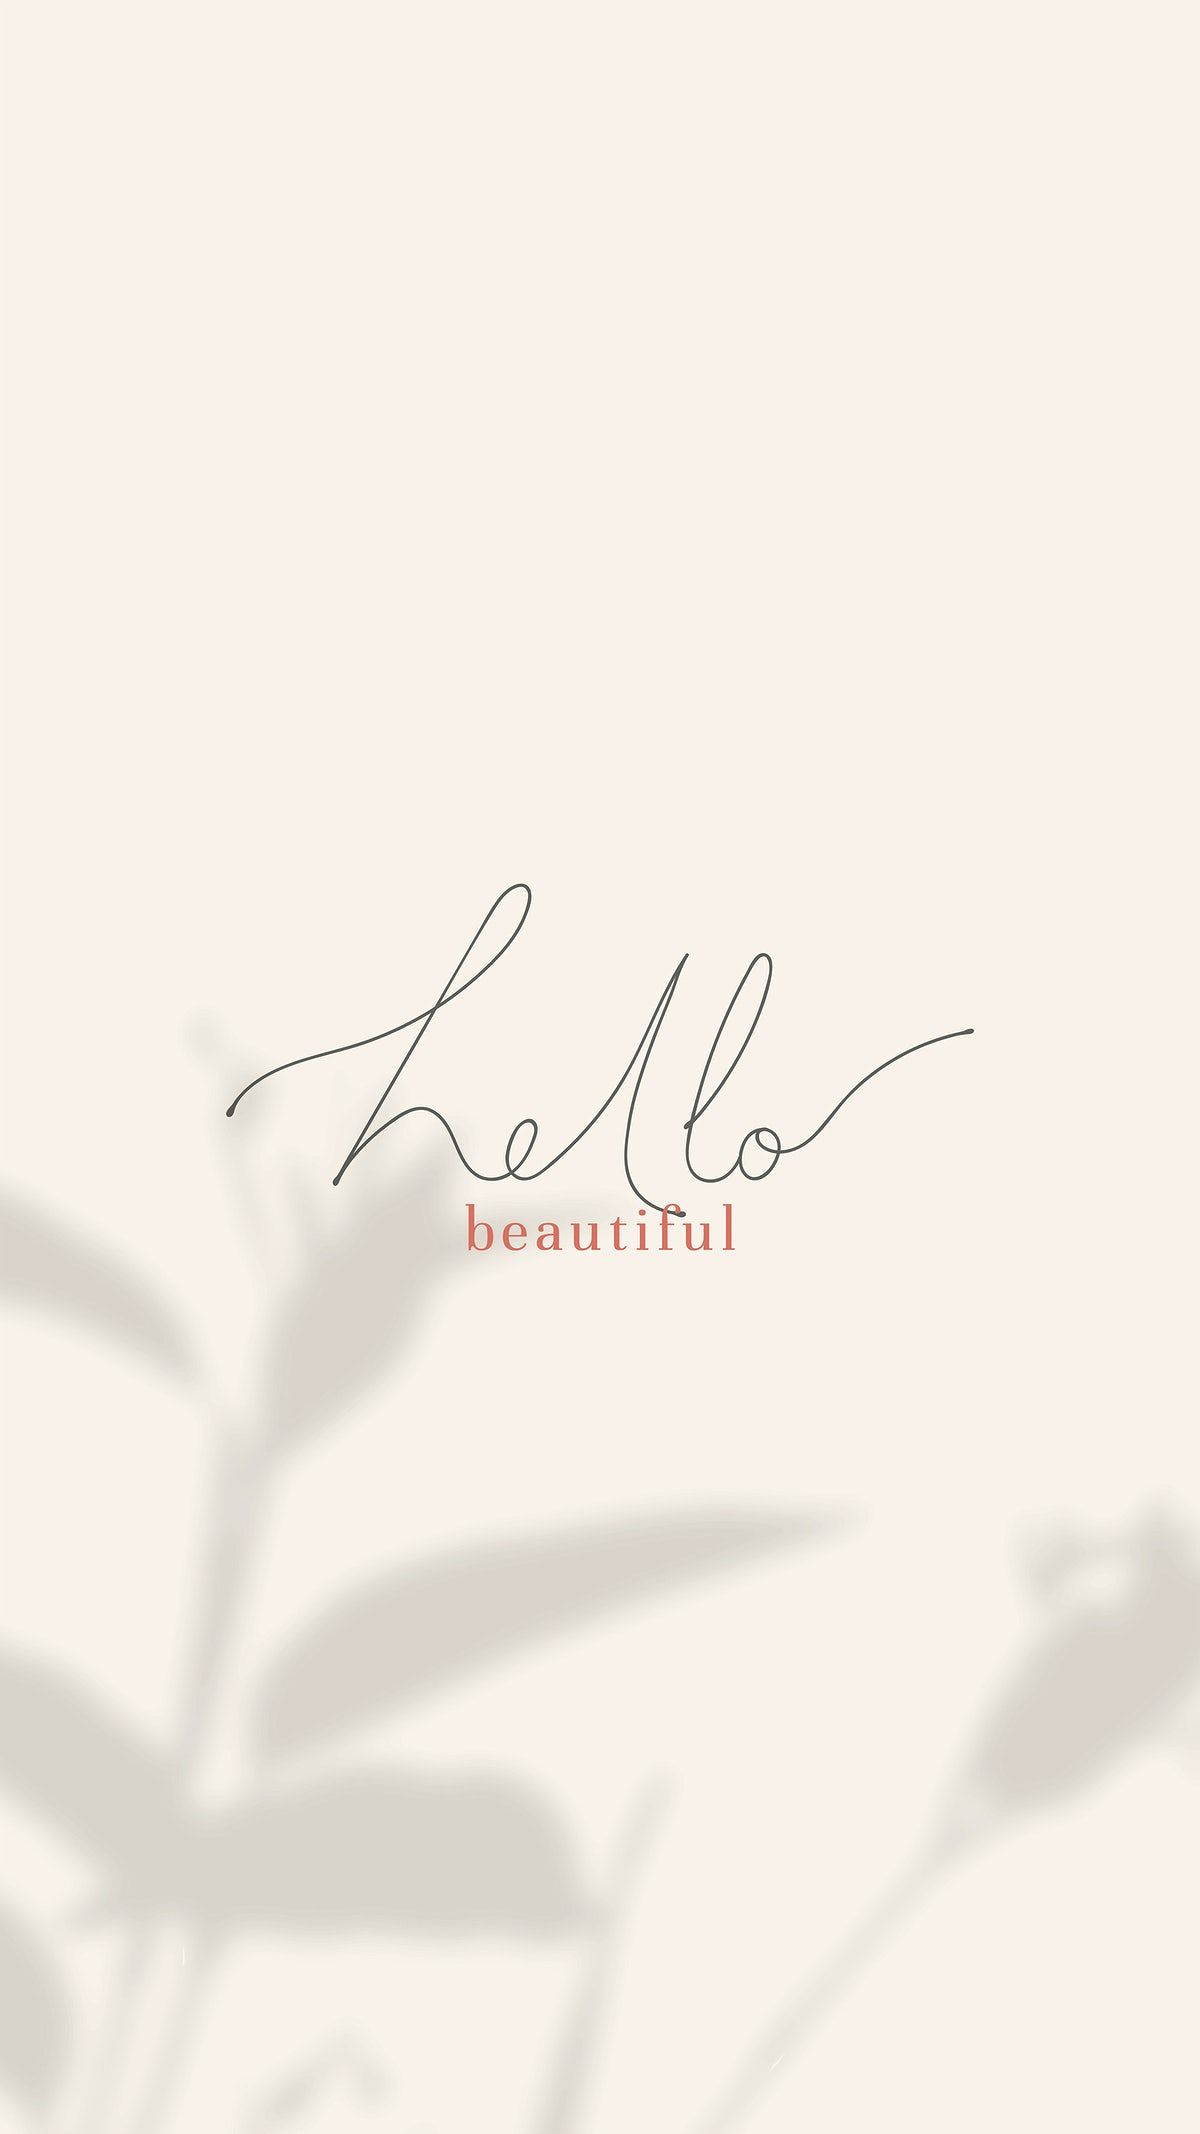 Download free vector of Hello beautiful mobile wallpaper vector 2041761